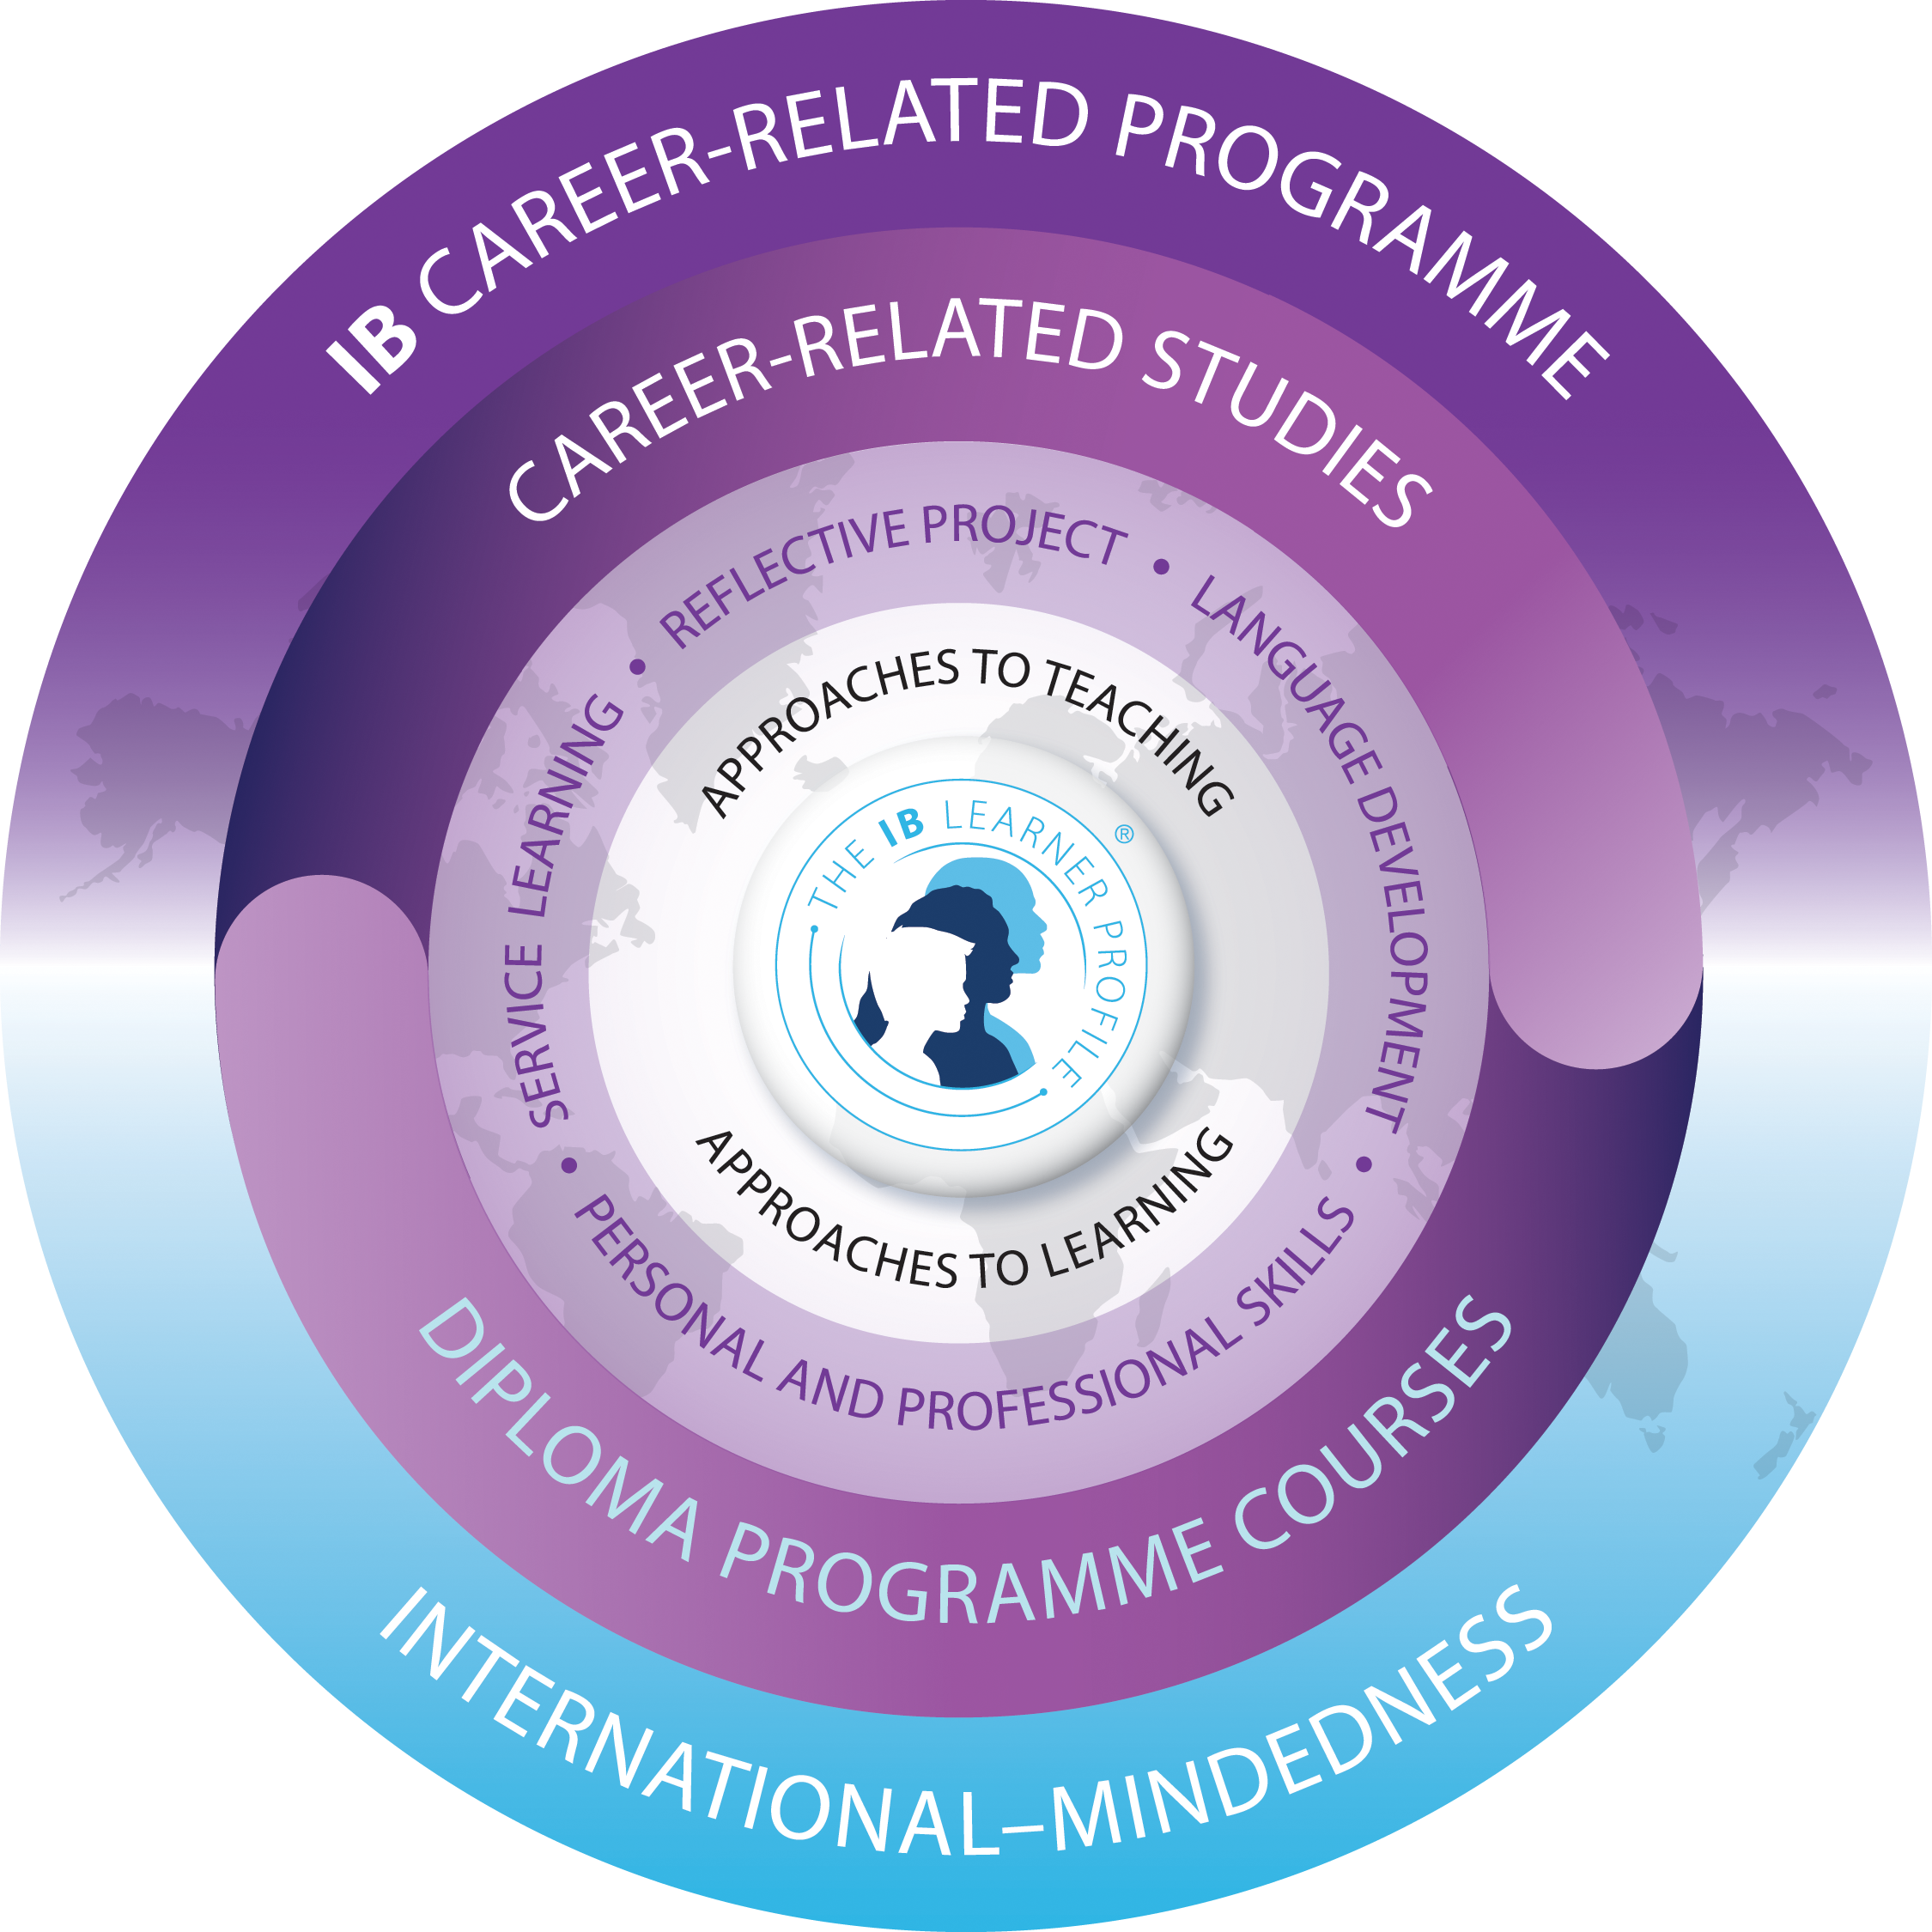 purple circle with Career-Related Studies Program